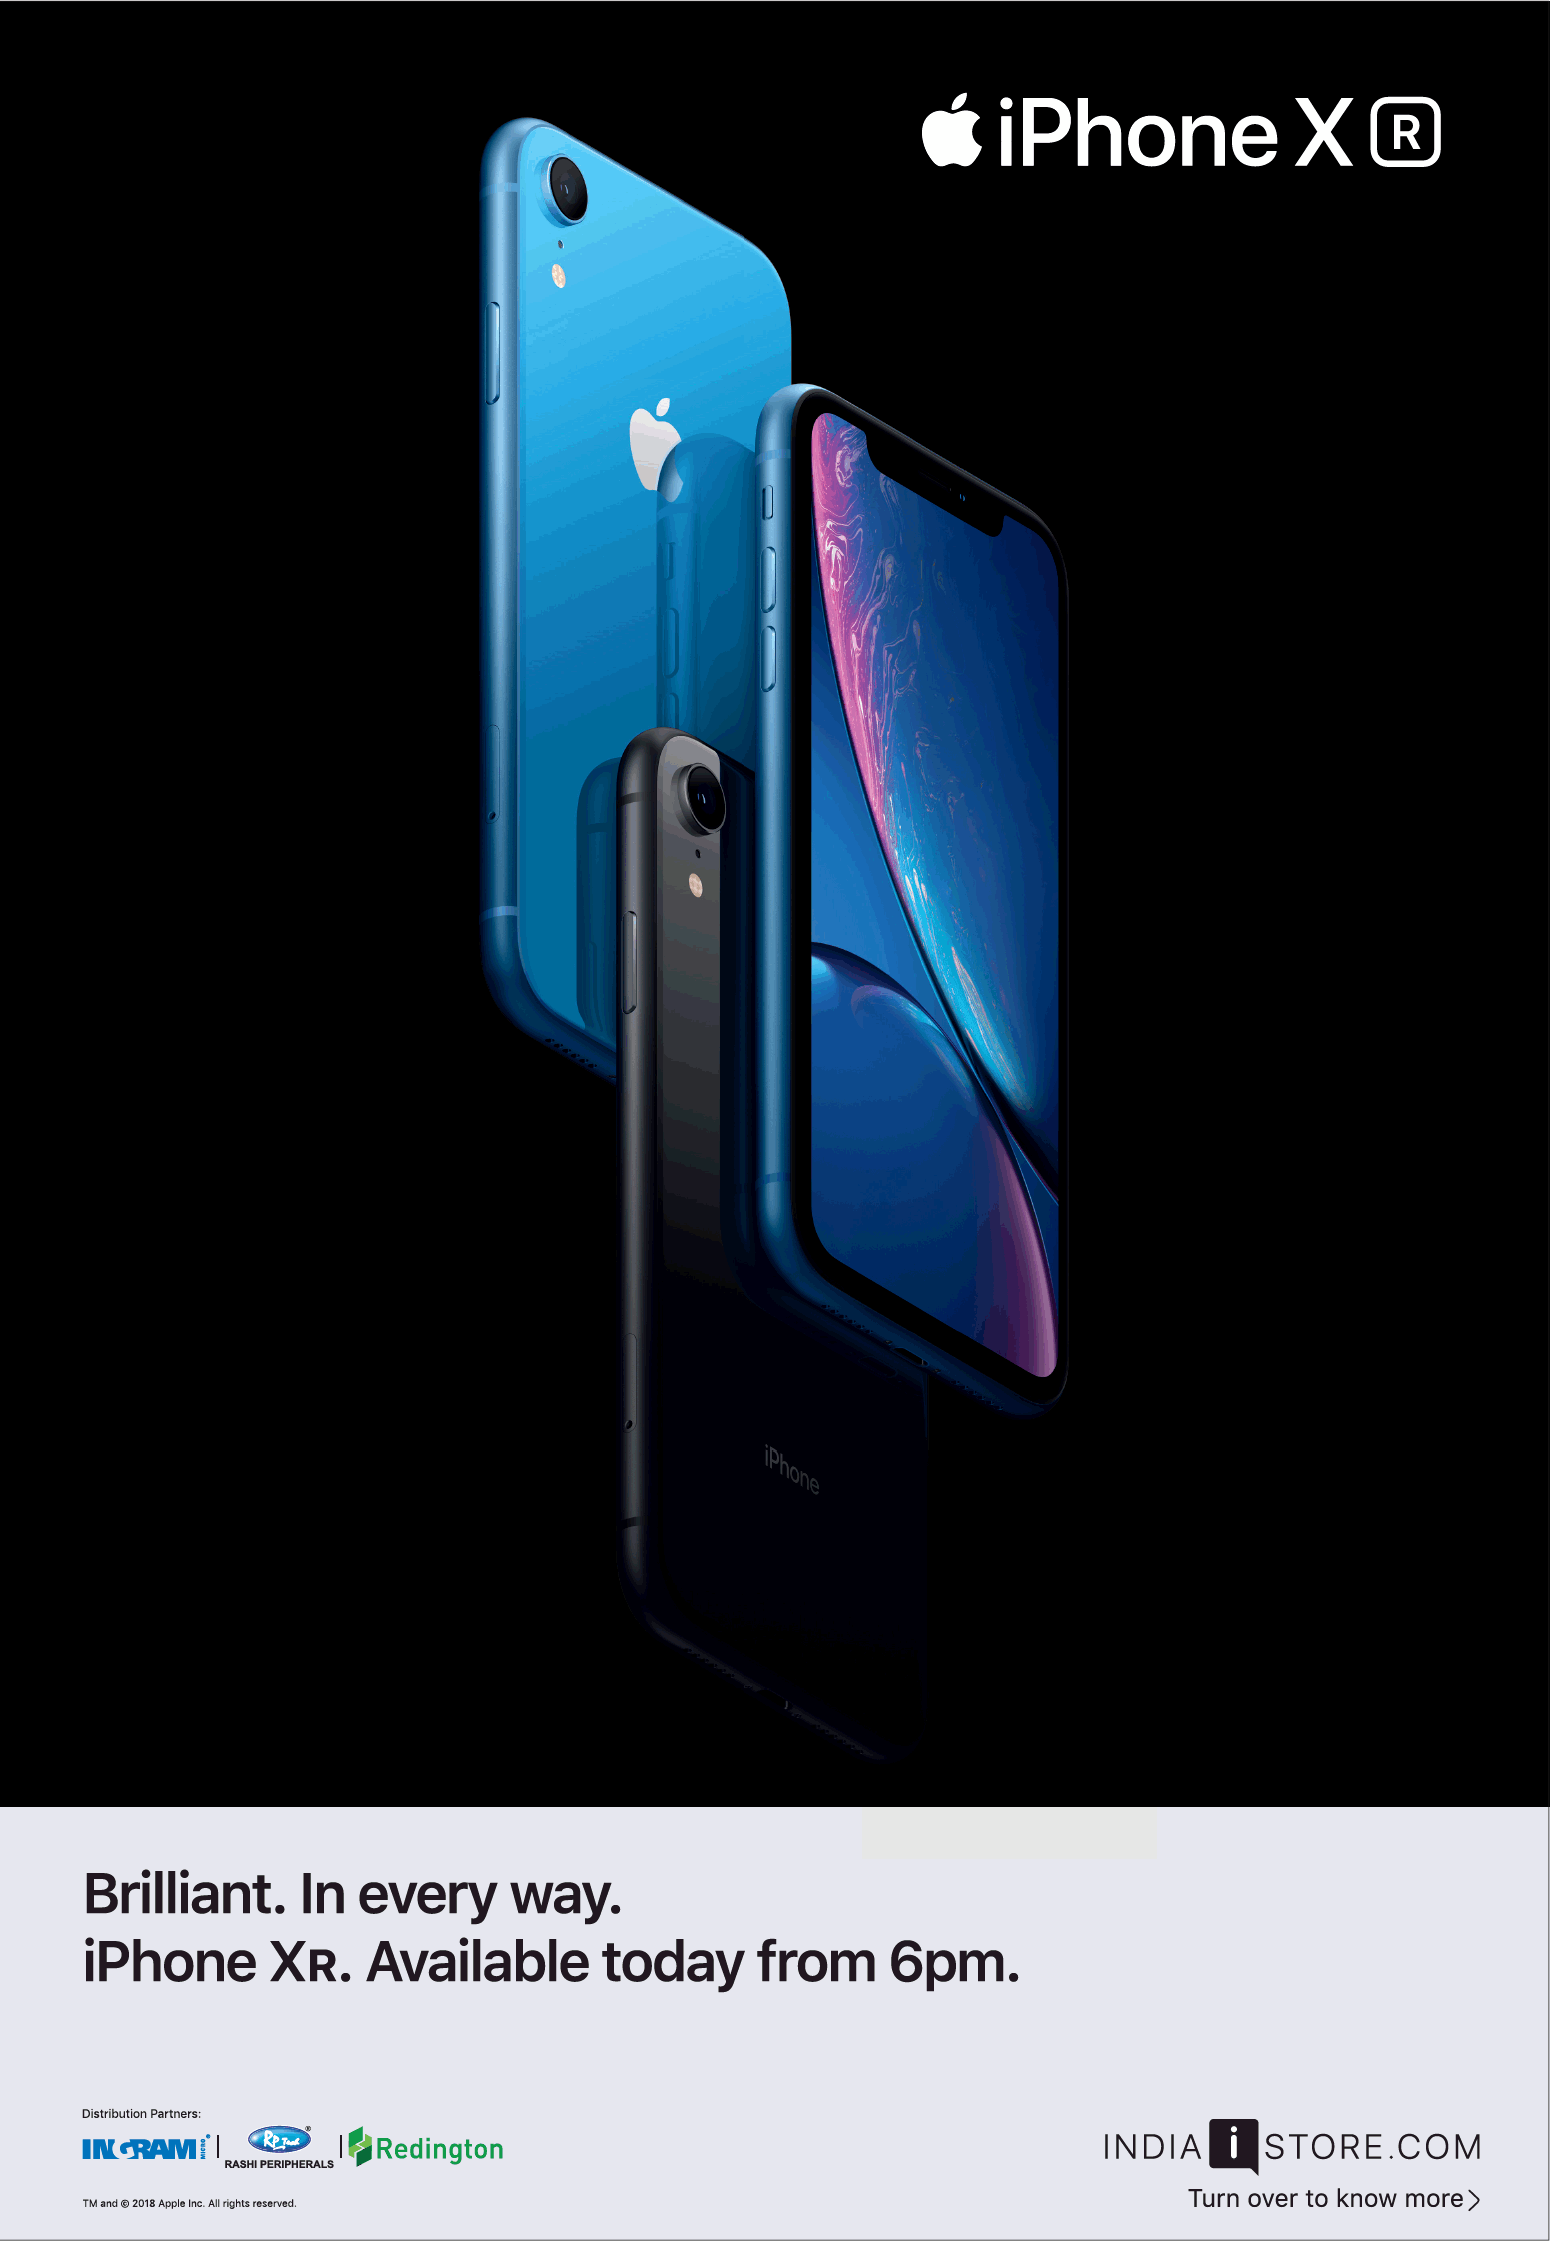 Iphone X R Brilliant In Every Way Ad - Advert Gallery